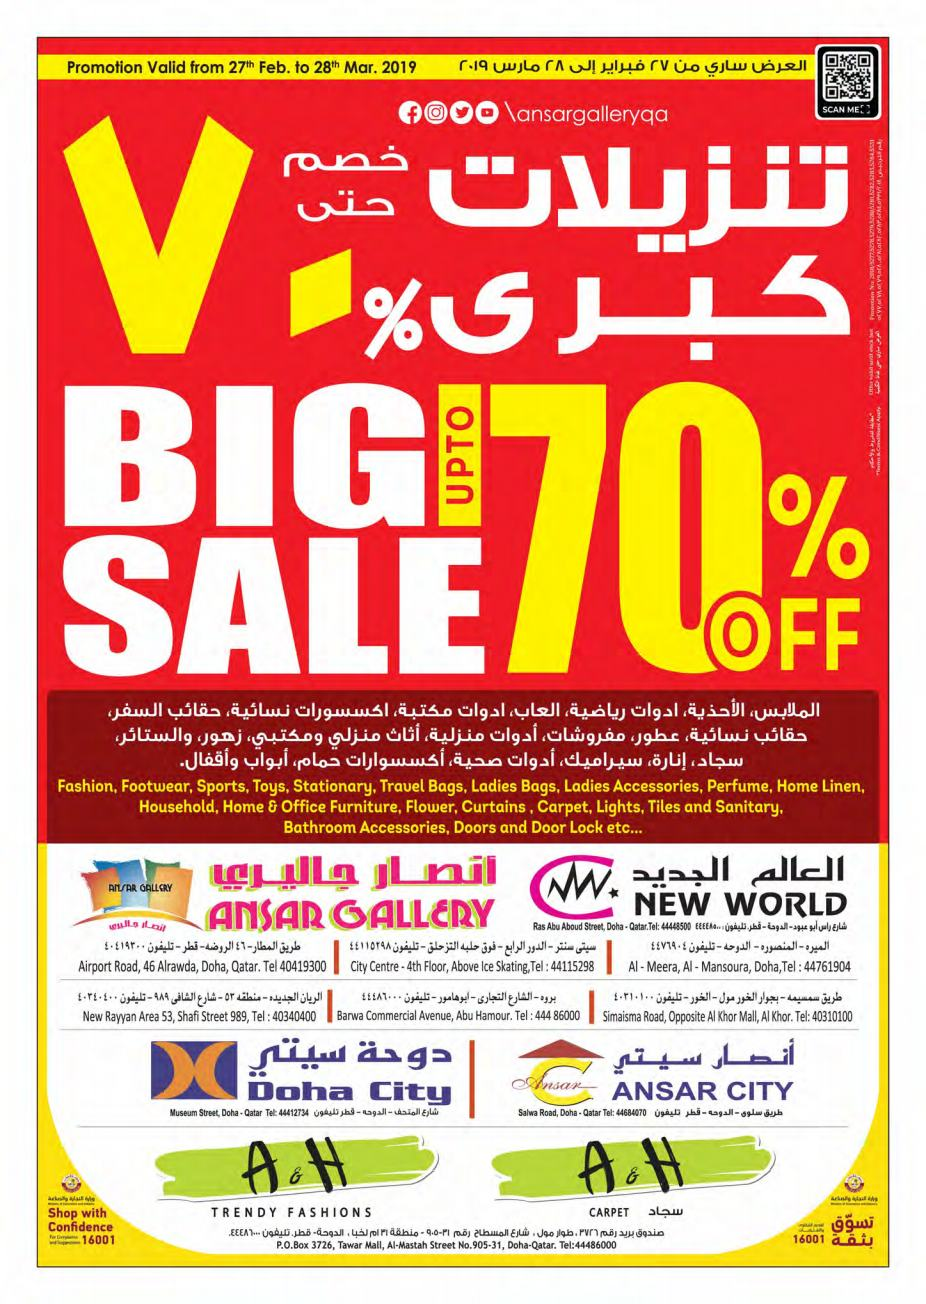 Ansar Gallery Big Sale till 28/03